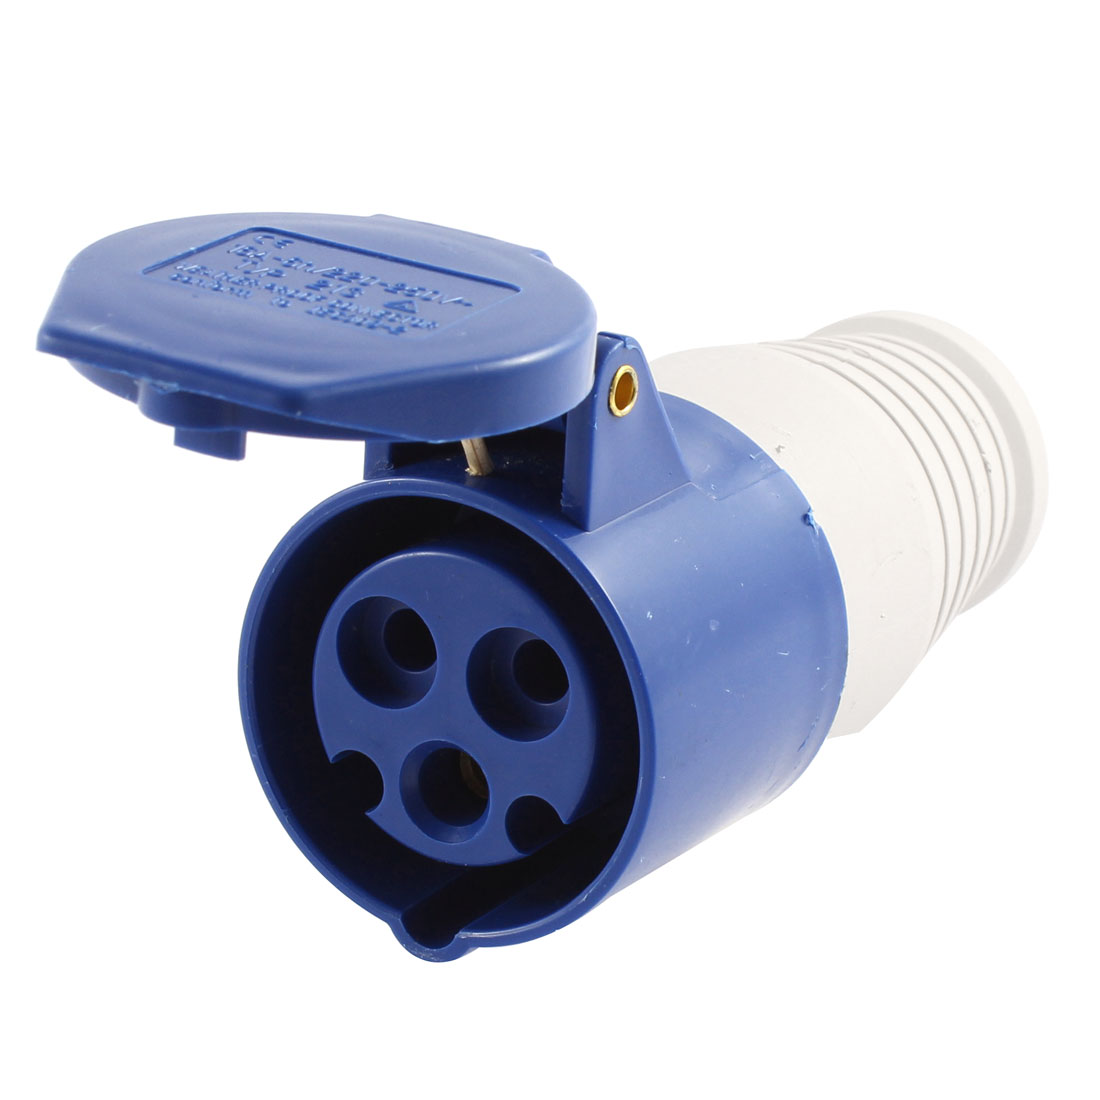 AC 220-250V 16A Blue White Plastic Water Proof IEC309-2 Industrial Socket TYP-213